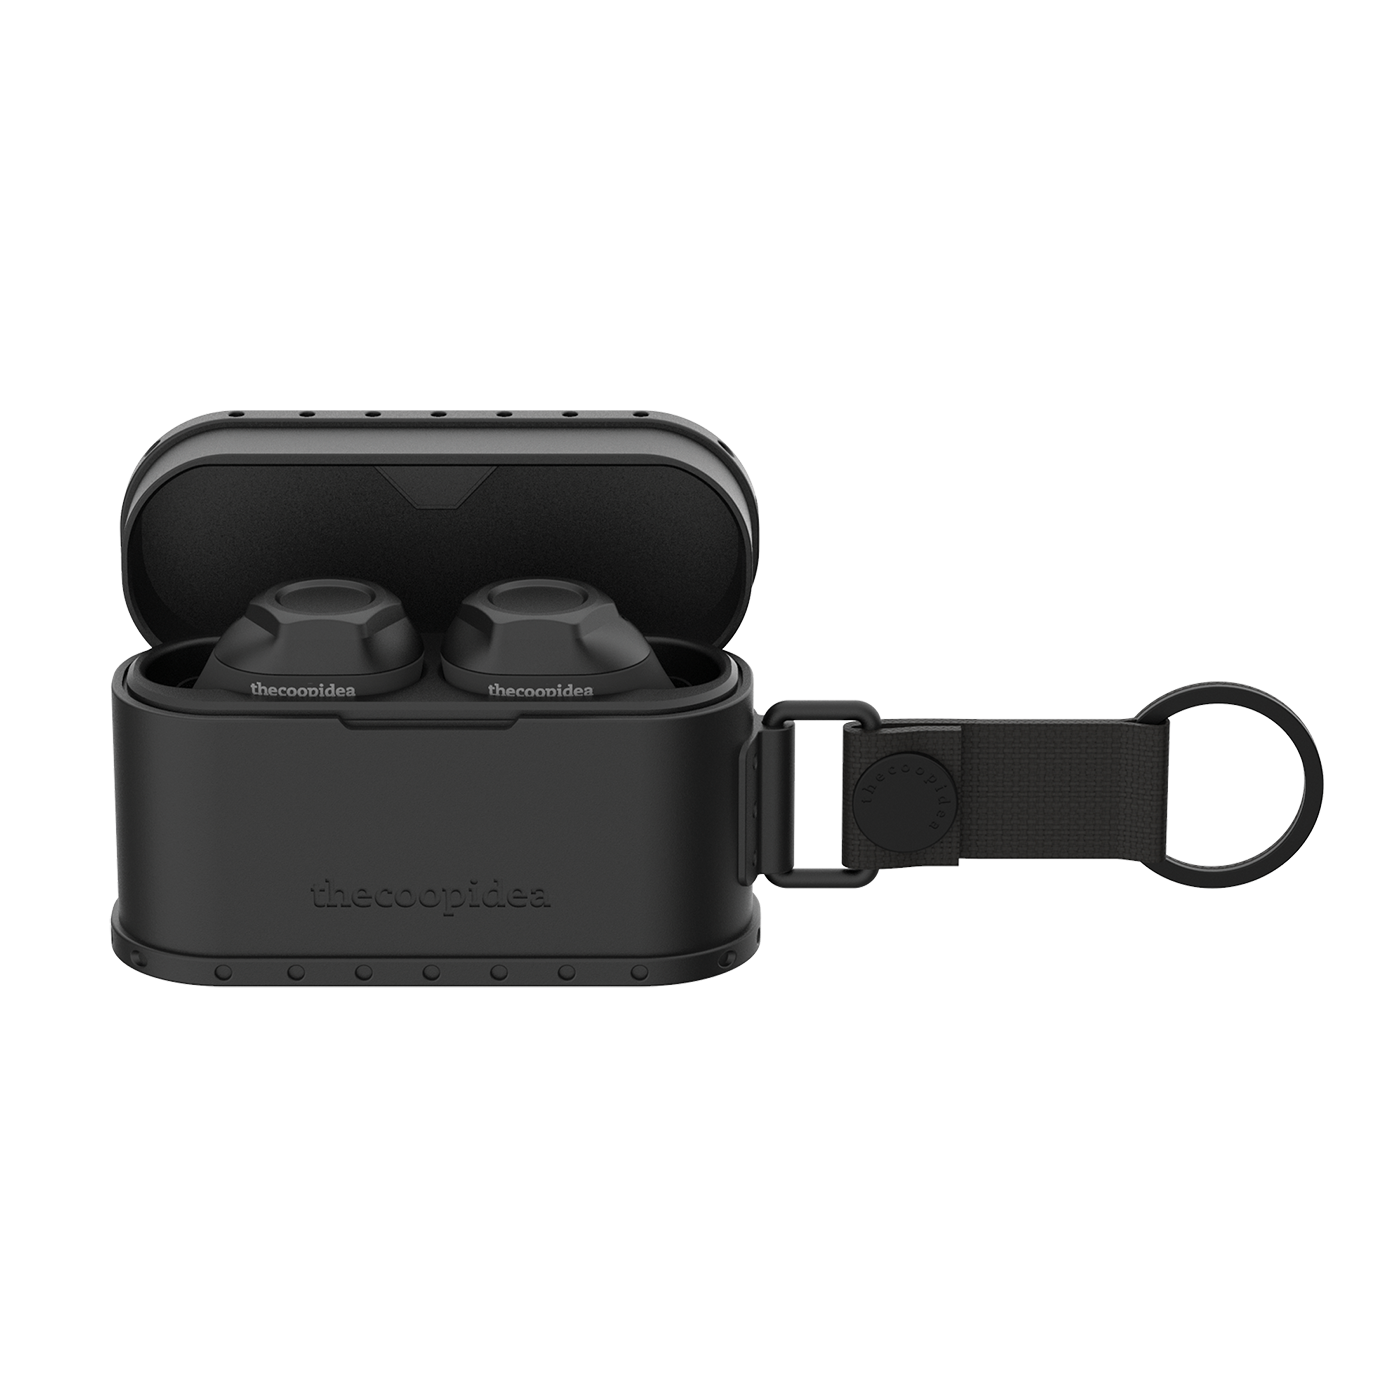 thecoopidea - CARGO 02 True Wireless Earbuds- MattBlack